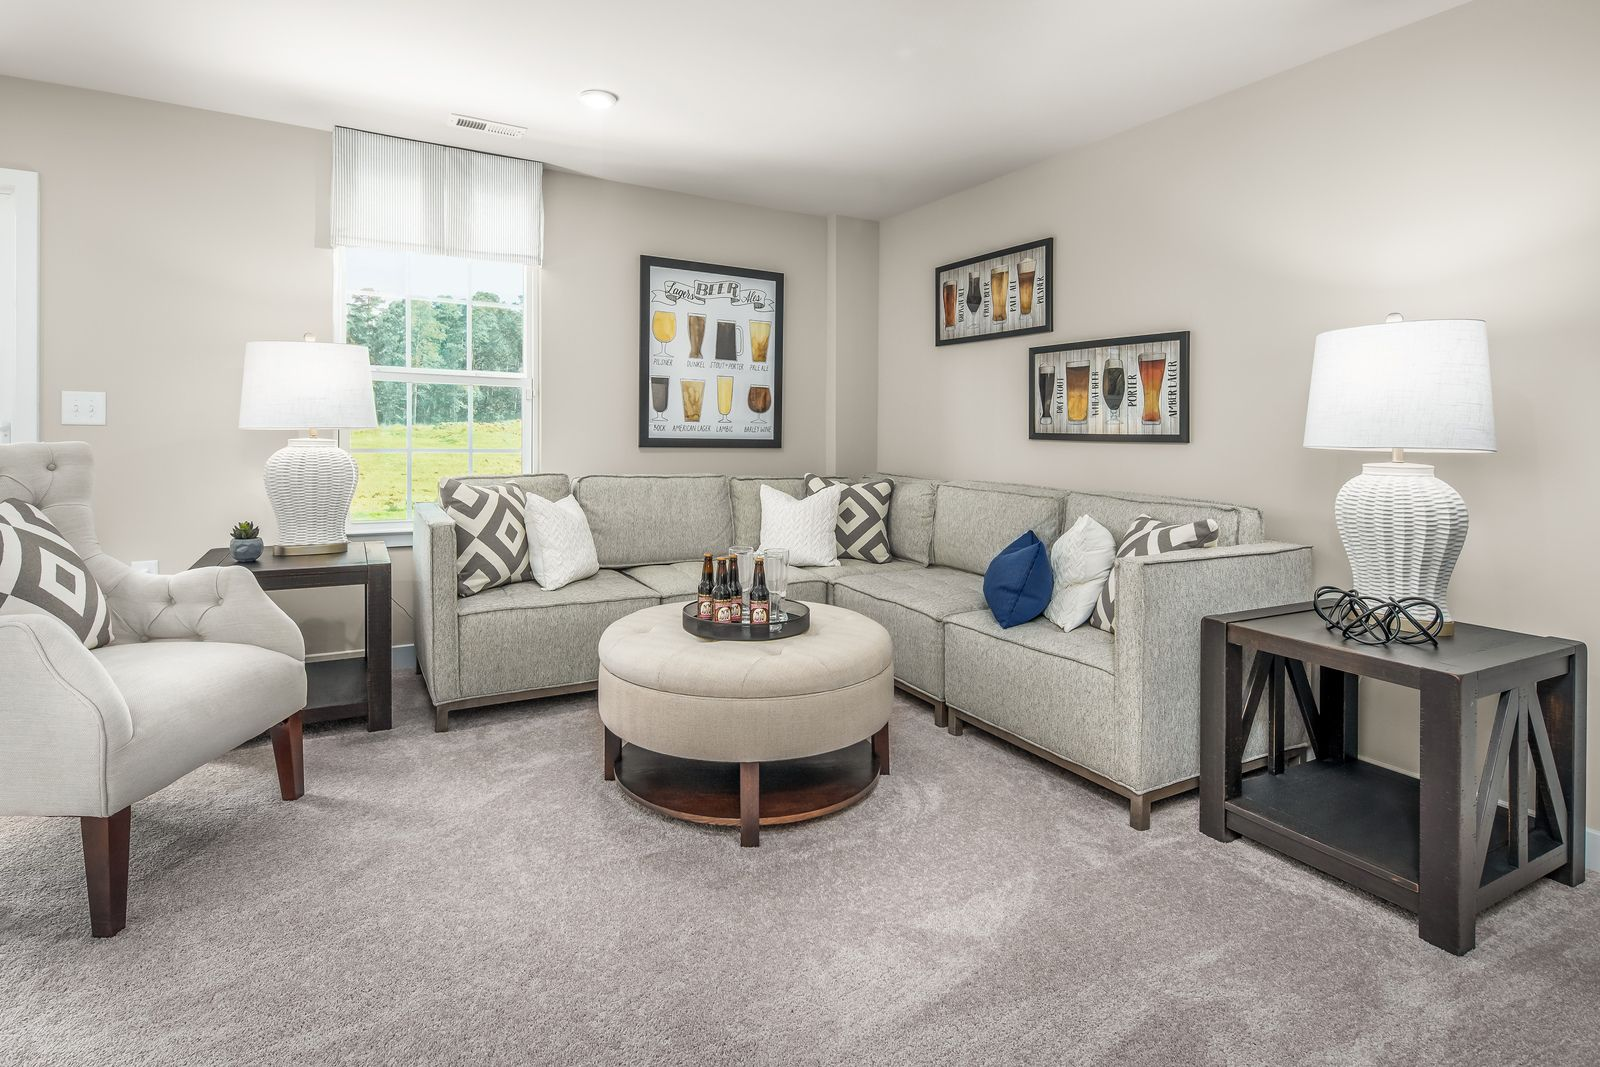 Living Area featured in the Mendelssohn By Ryan Homes in Charlotte, NC